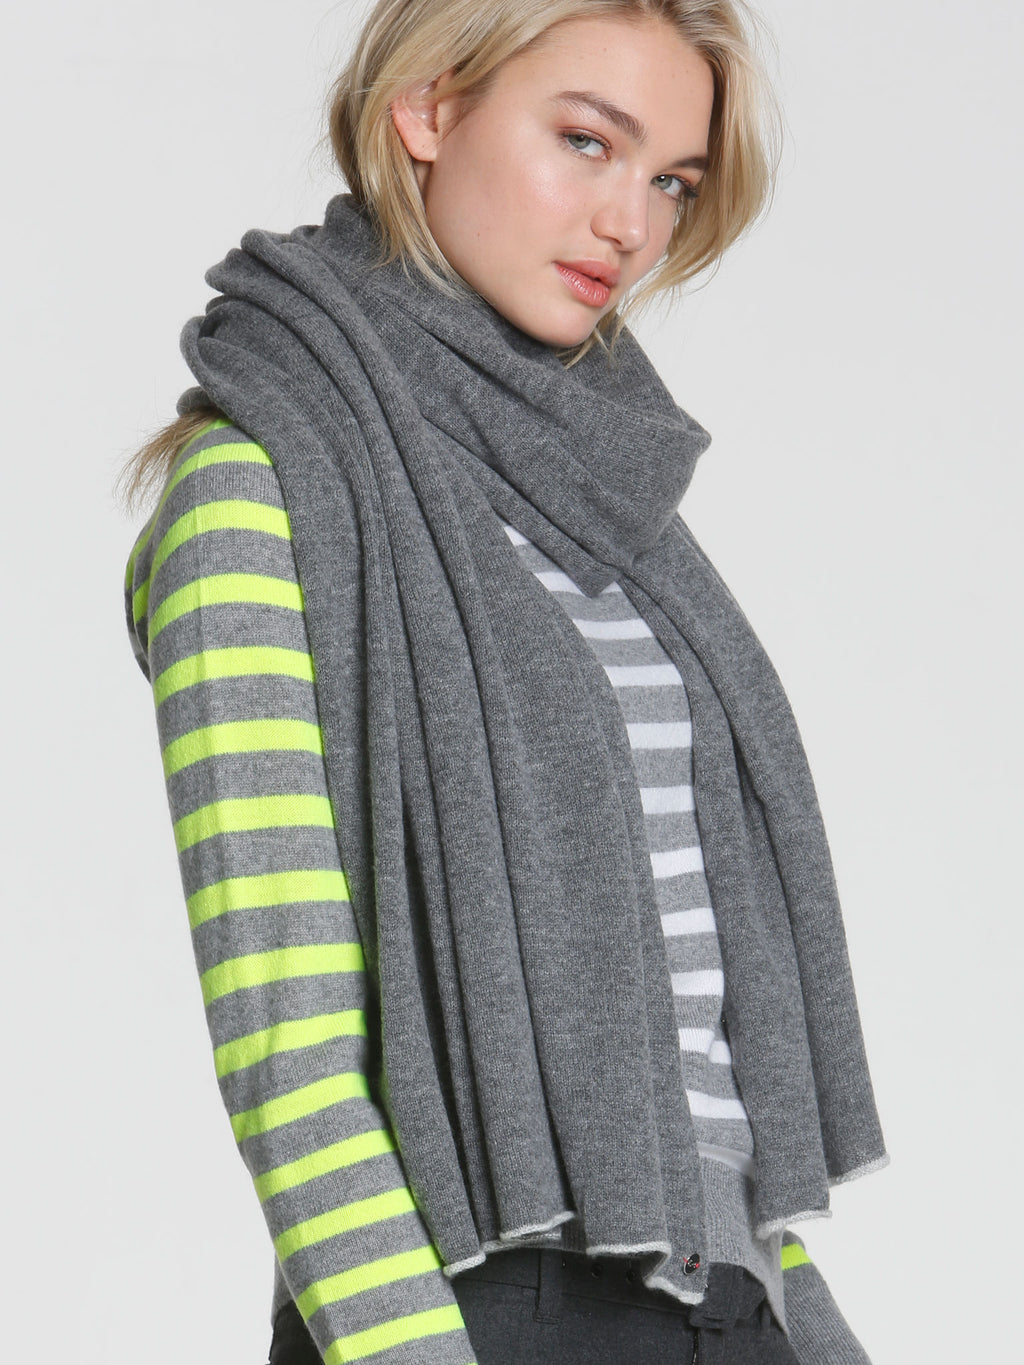 Luxe-30 Jet Wrap - Charcoal